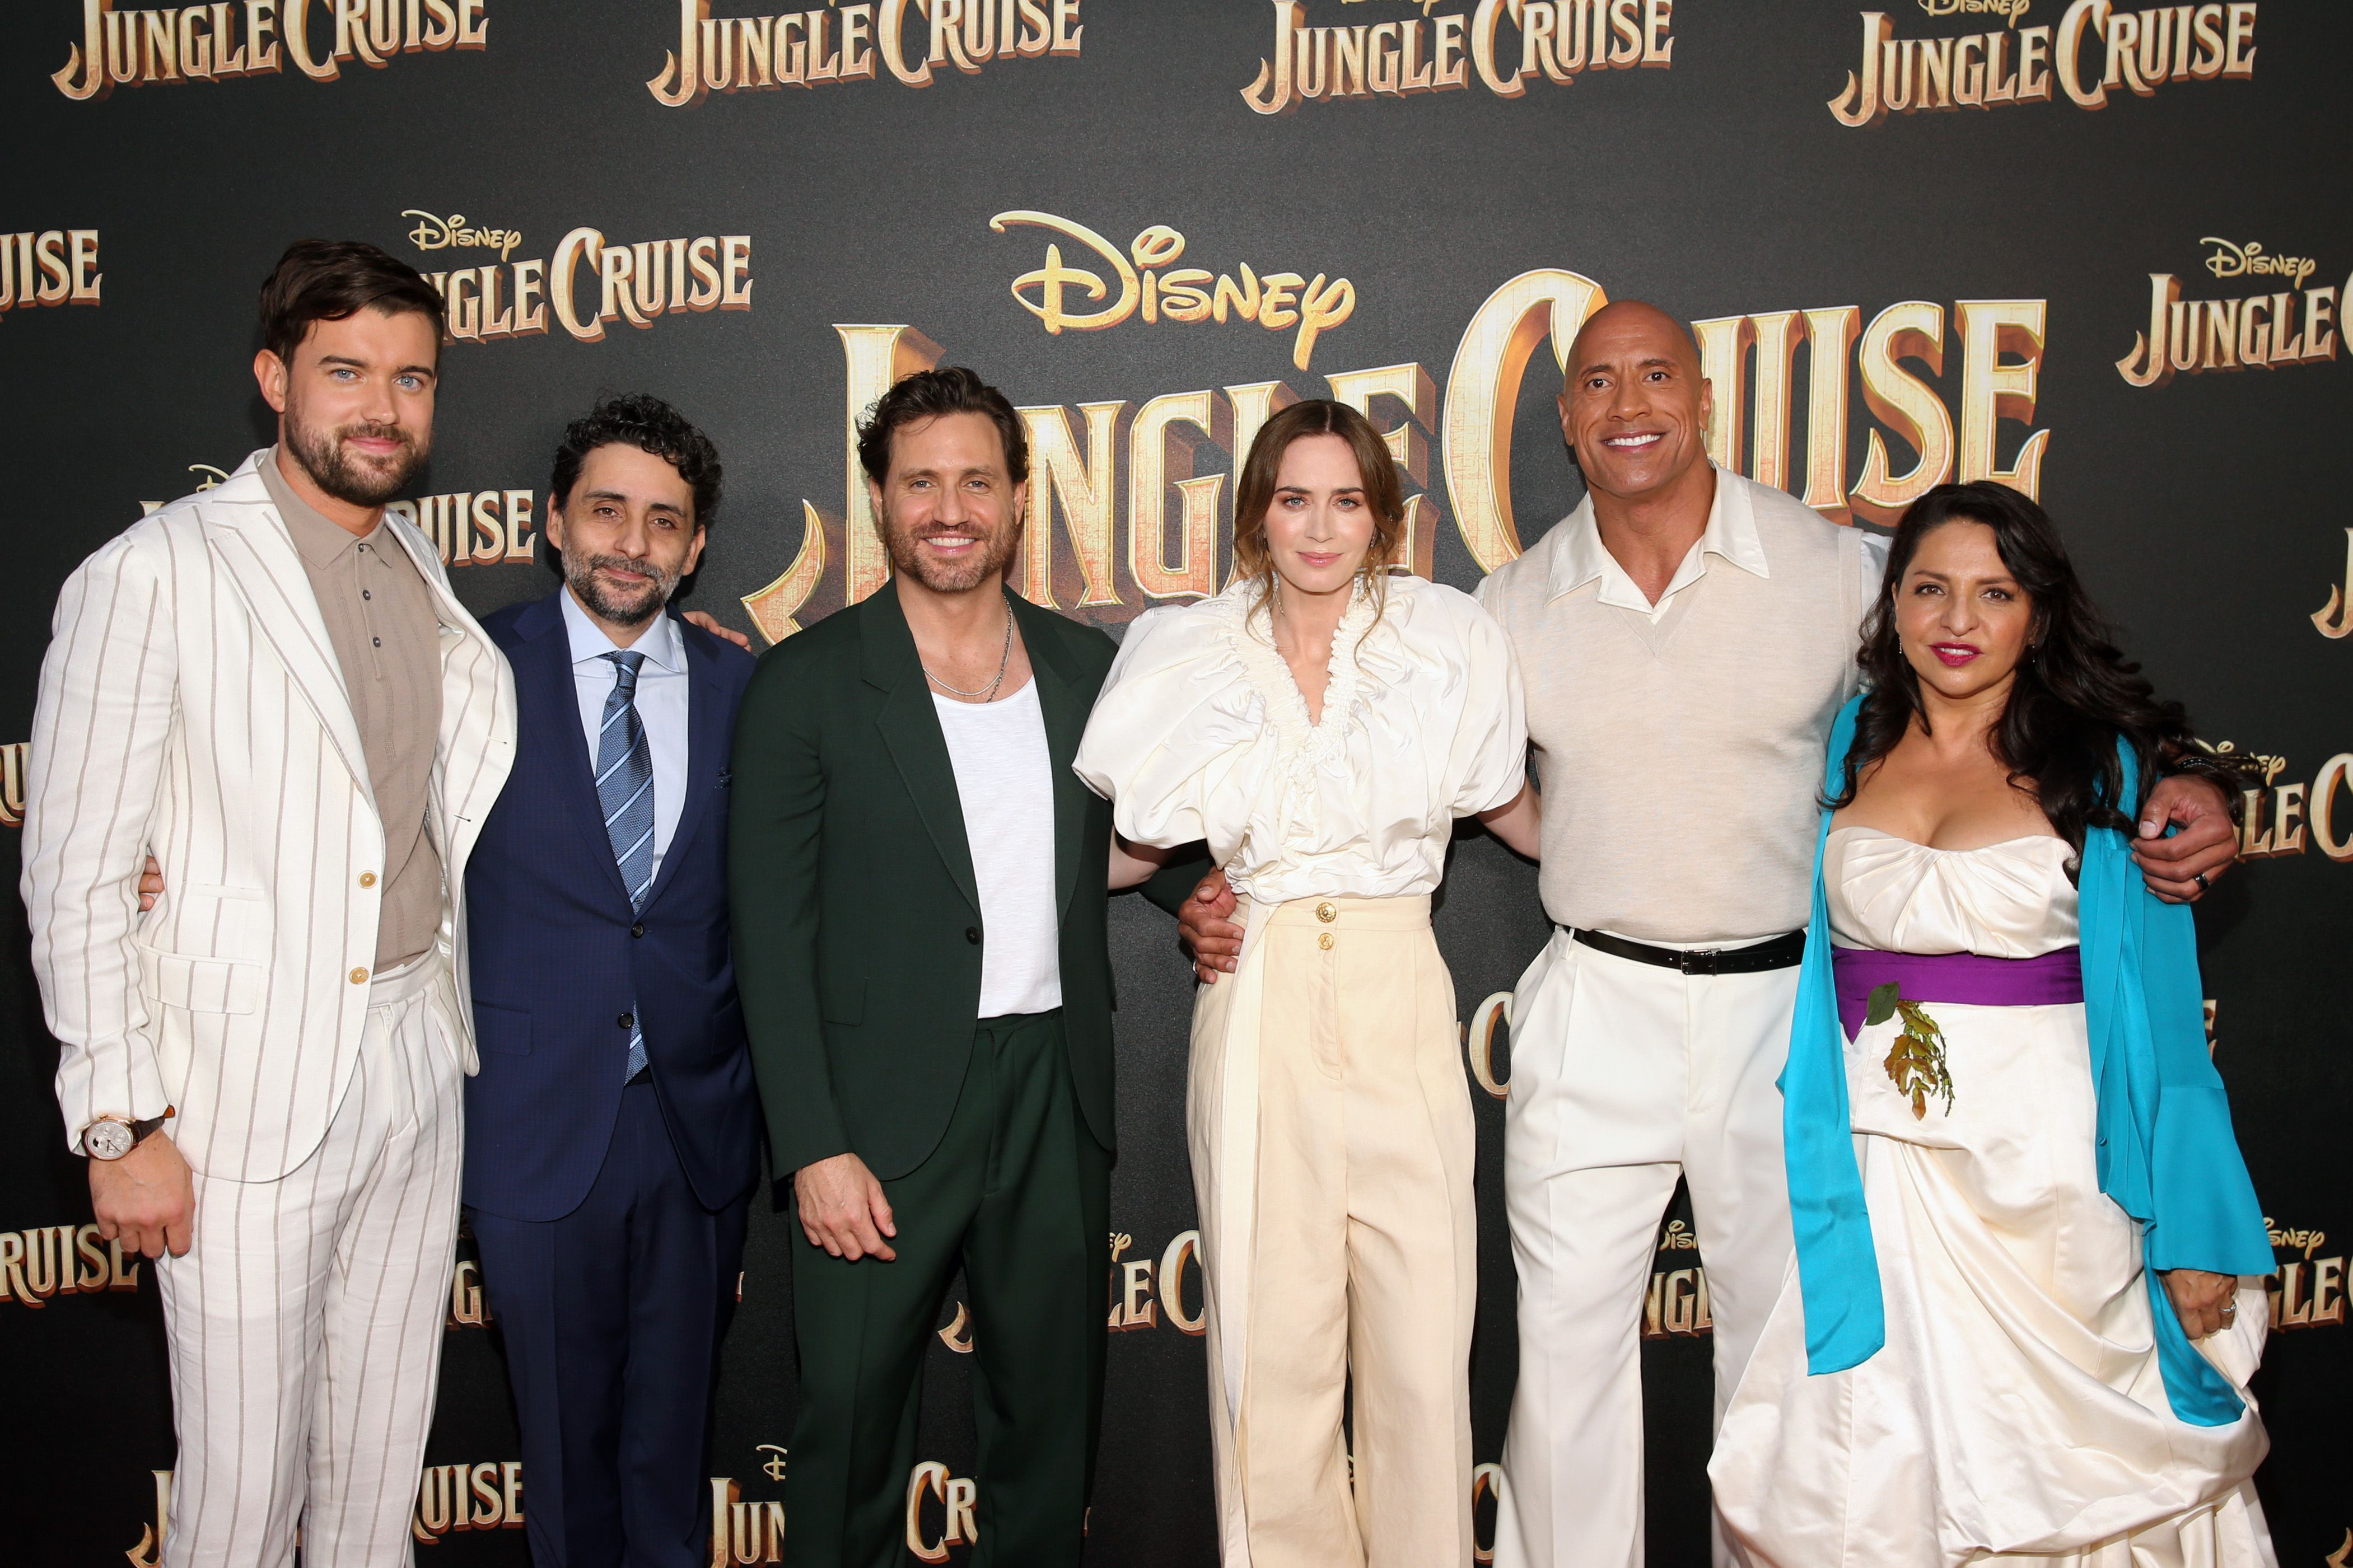 Emily Blunt and Dwayne 'The Rock' Johnson wrap their arms around each other with the 'Jungle Cruise' cast.